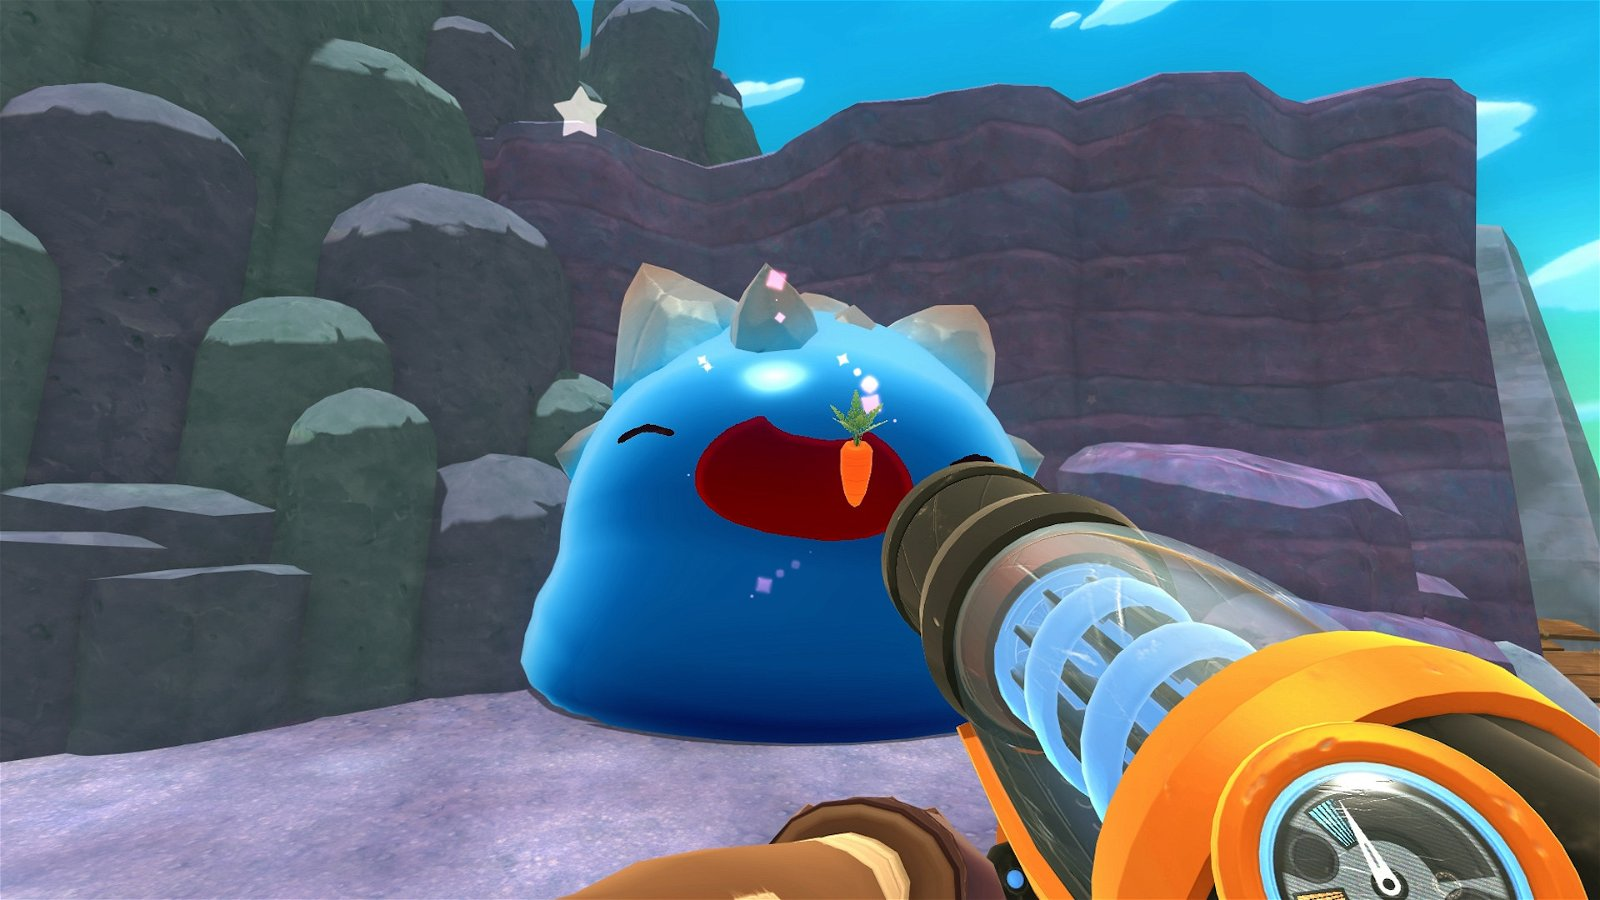 Slime Rancher (Pc) Review - Heckin' Cute! 9